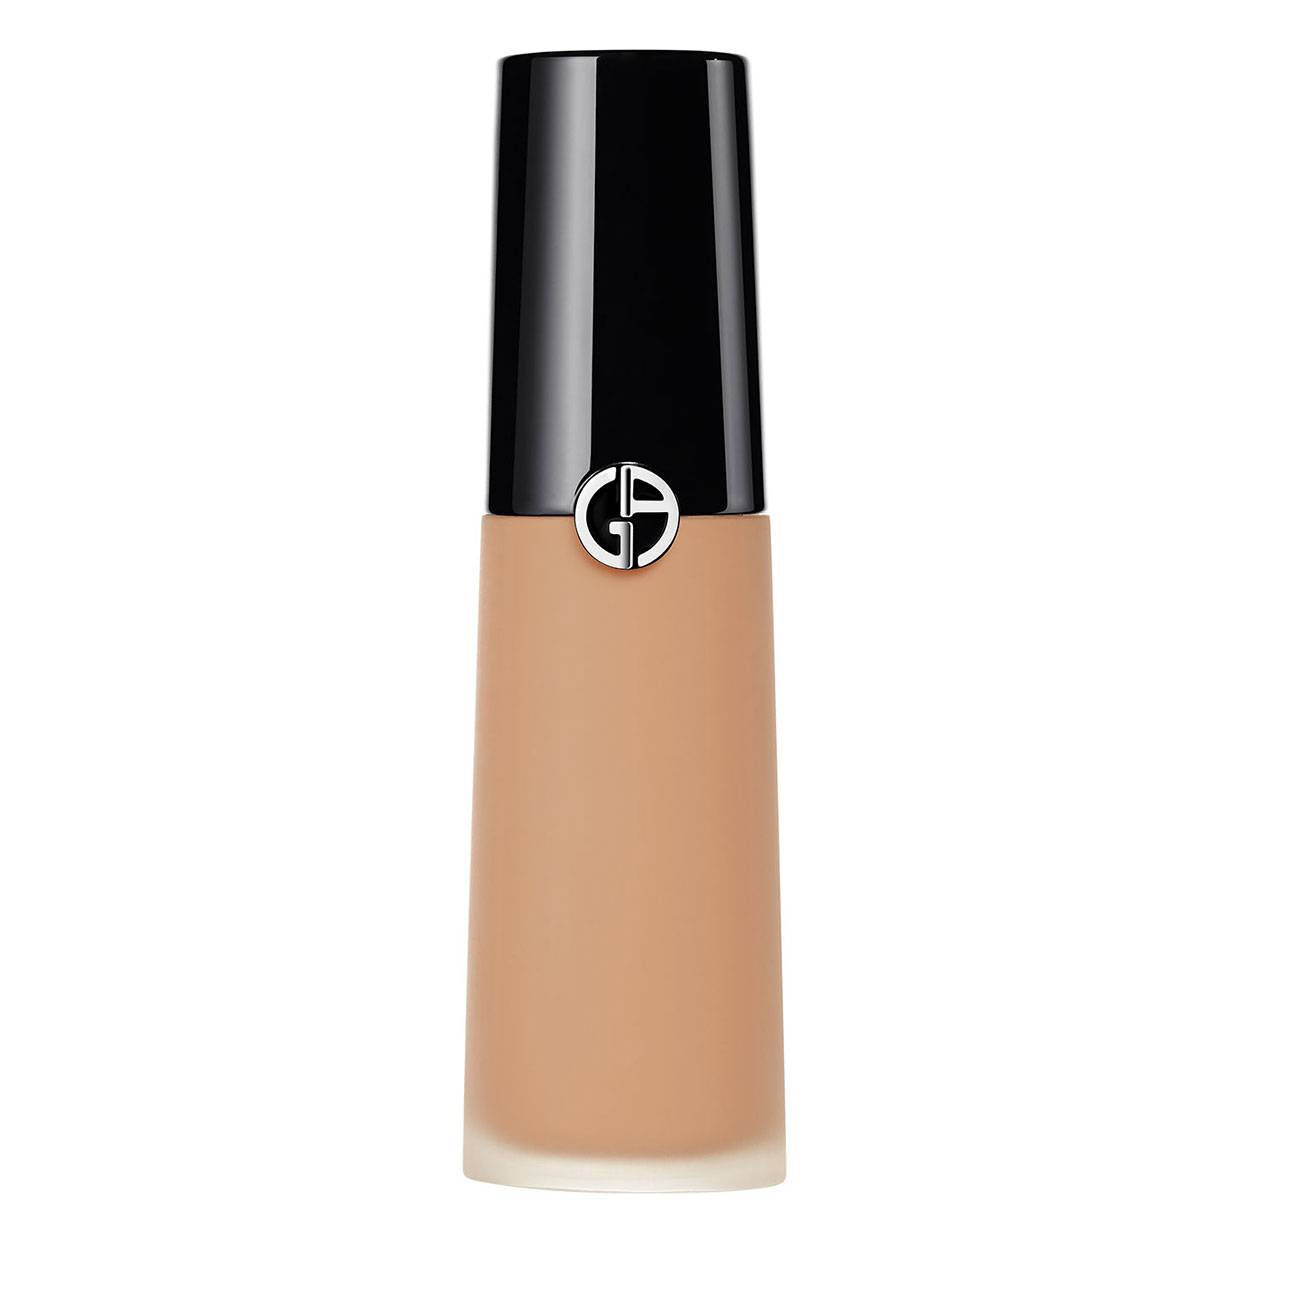 Luminous Silk Concealer 6.5 12ml Giorgio Armani imagine 2021 bestvalue.eu